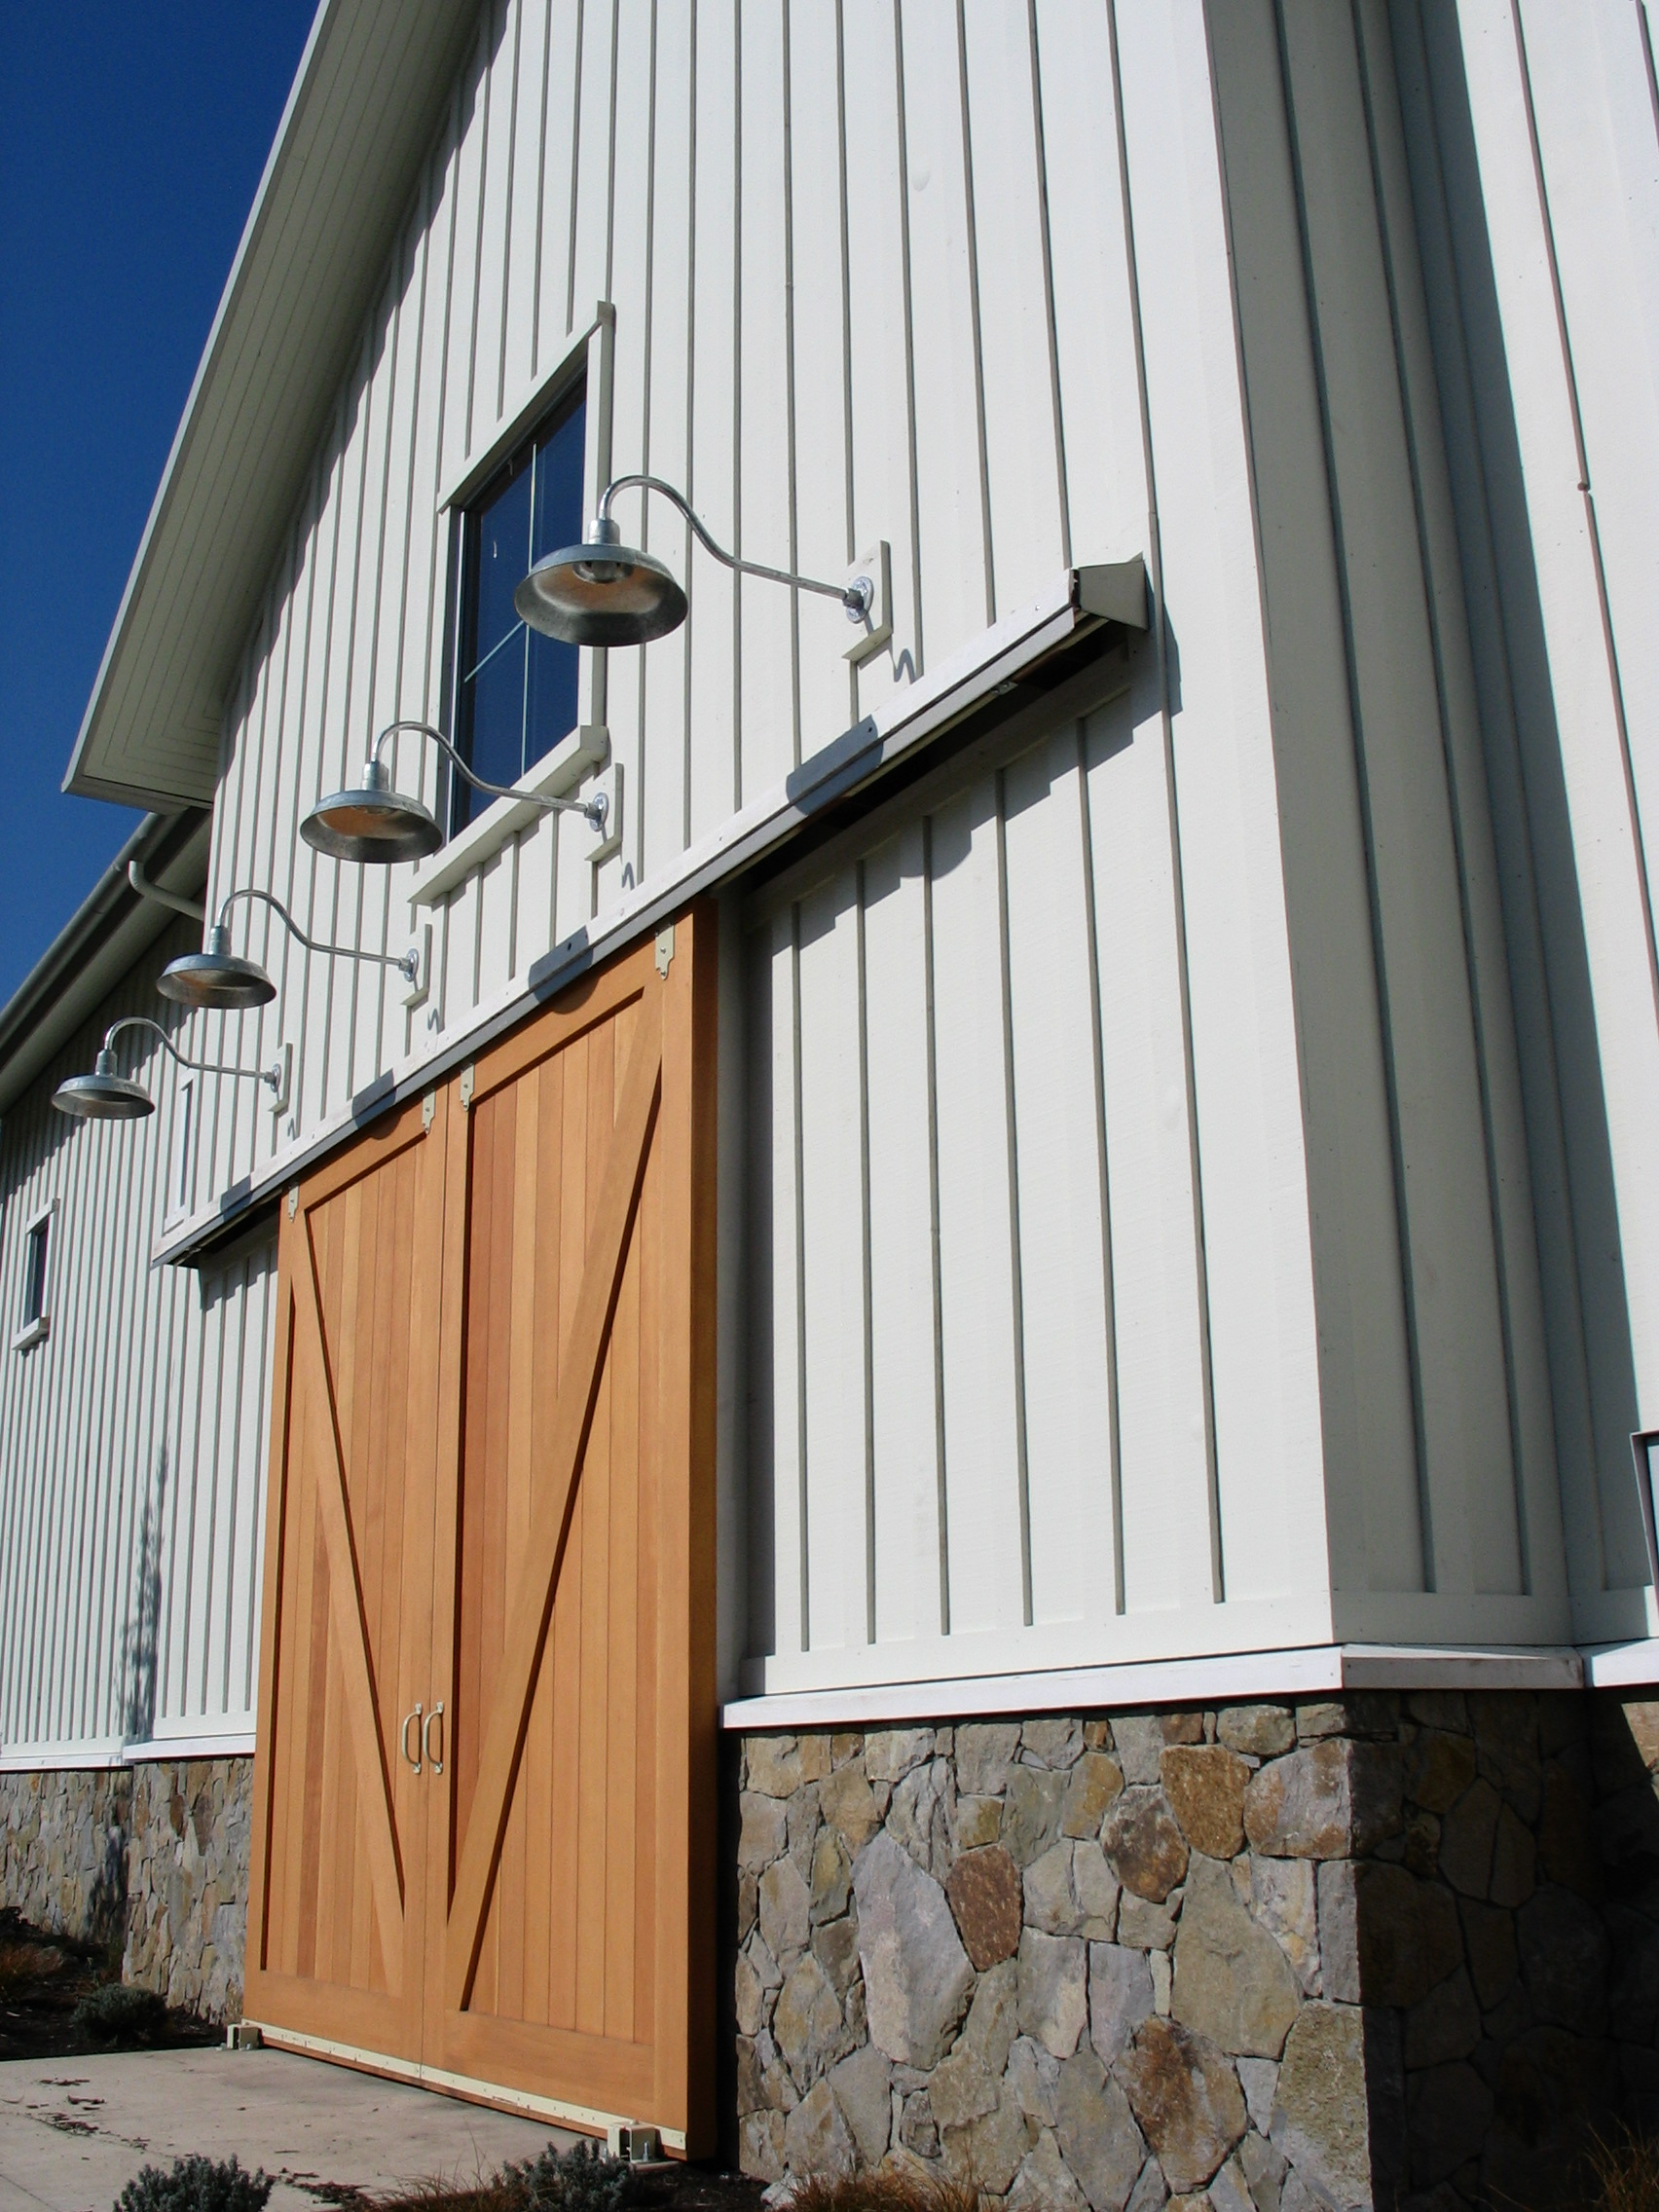 Why The Longevity Of Stable And Barn Door Hardware Is Important